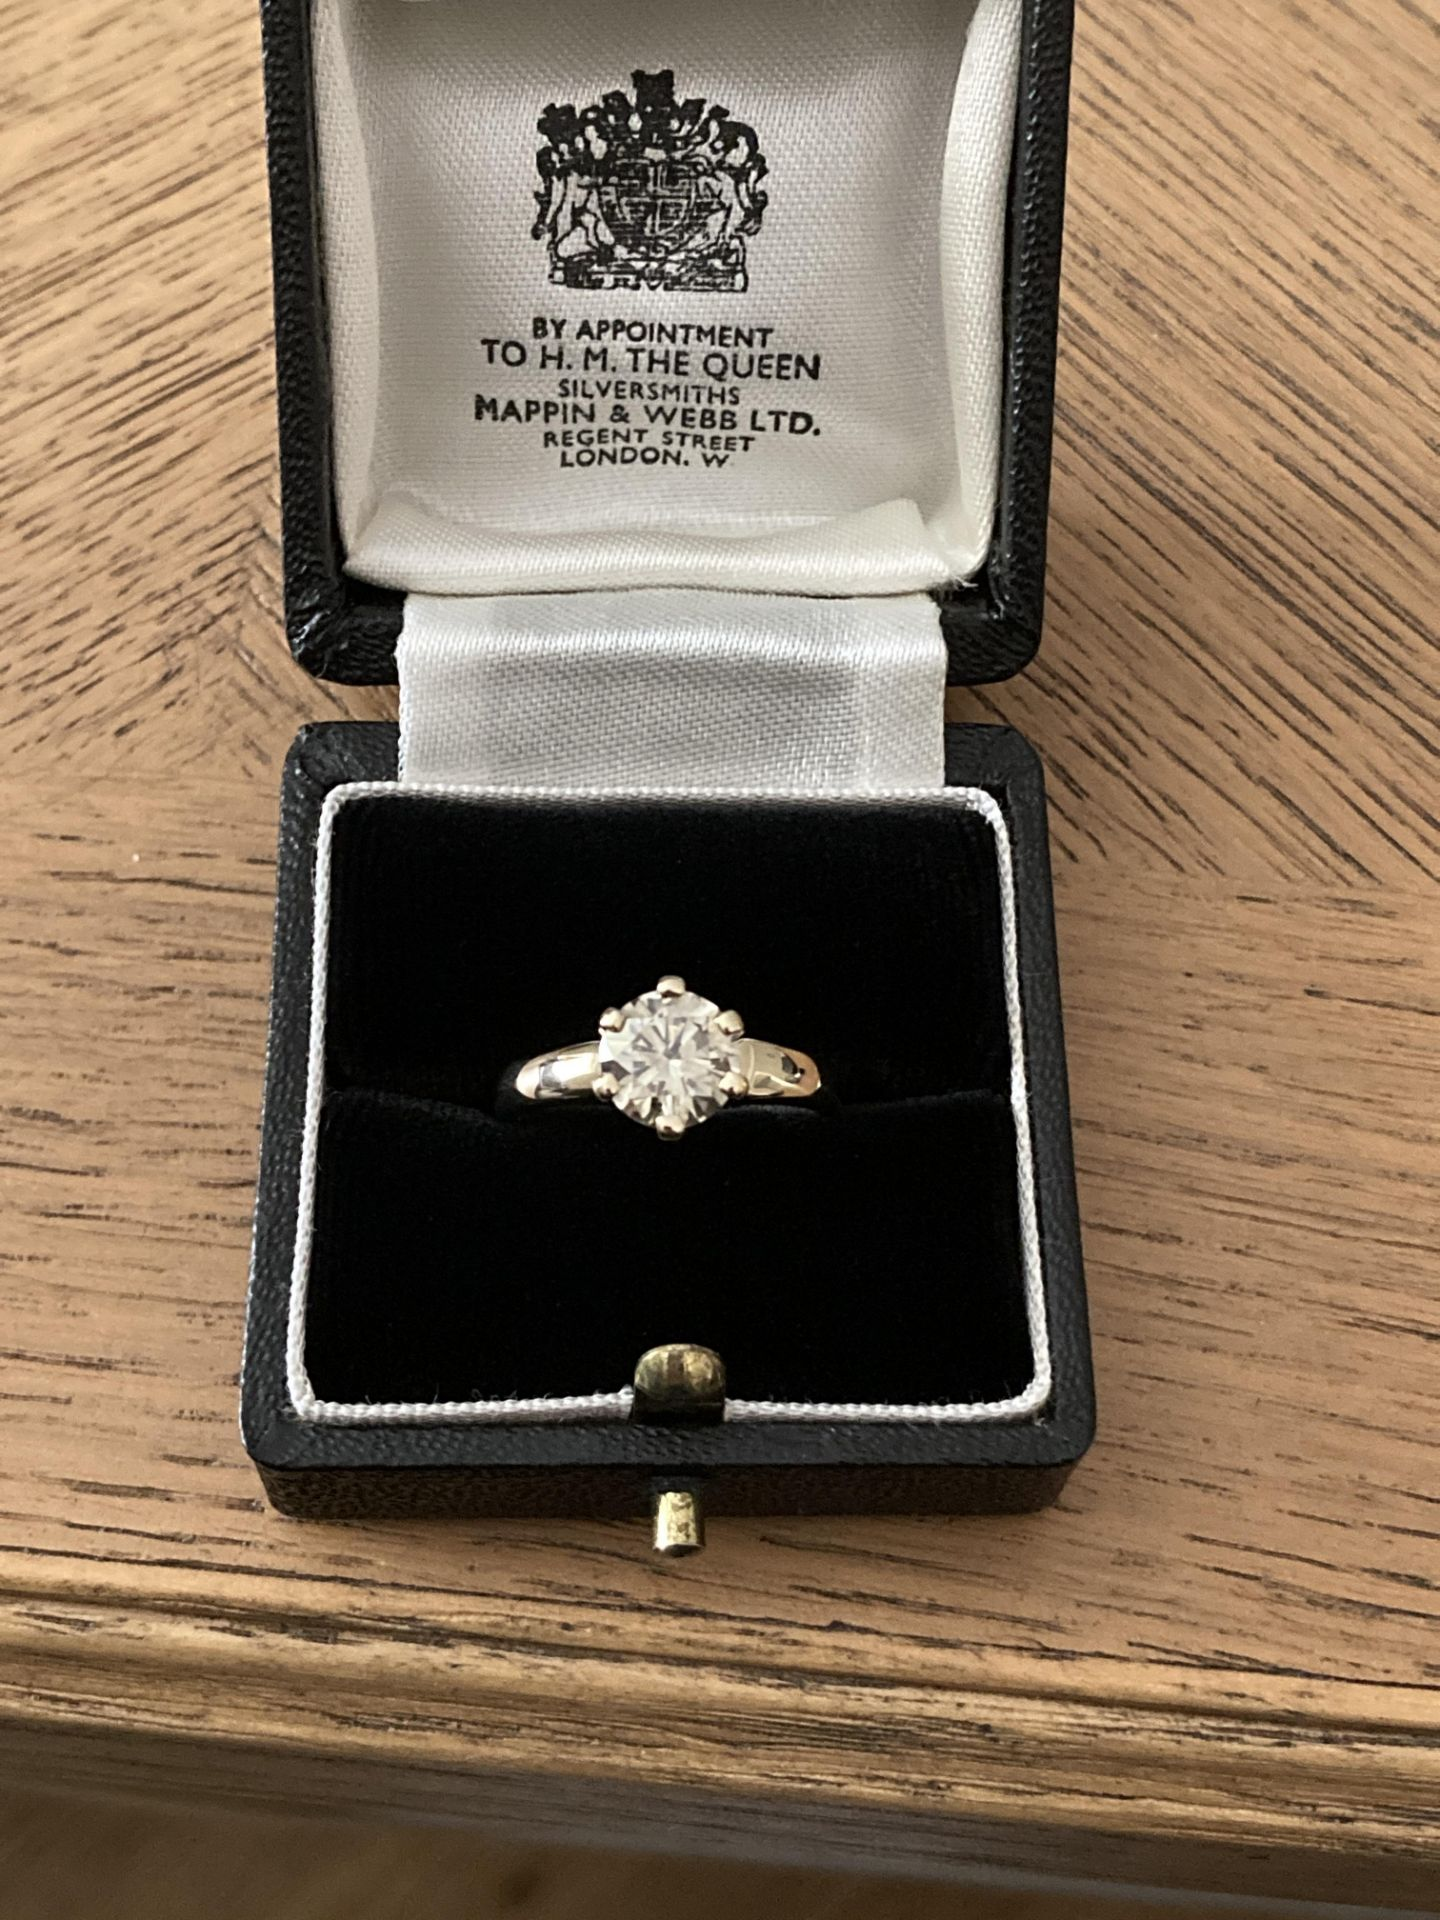 1.54CT DIAMOND SOLITAIRE RING Y. GOLD (ROUND BRILLIANT) - 2012 VALUATION £6,200 INCLUDED - Image 10 of 14